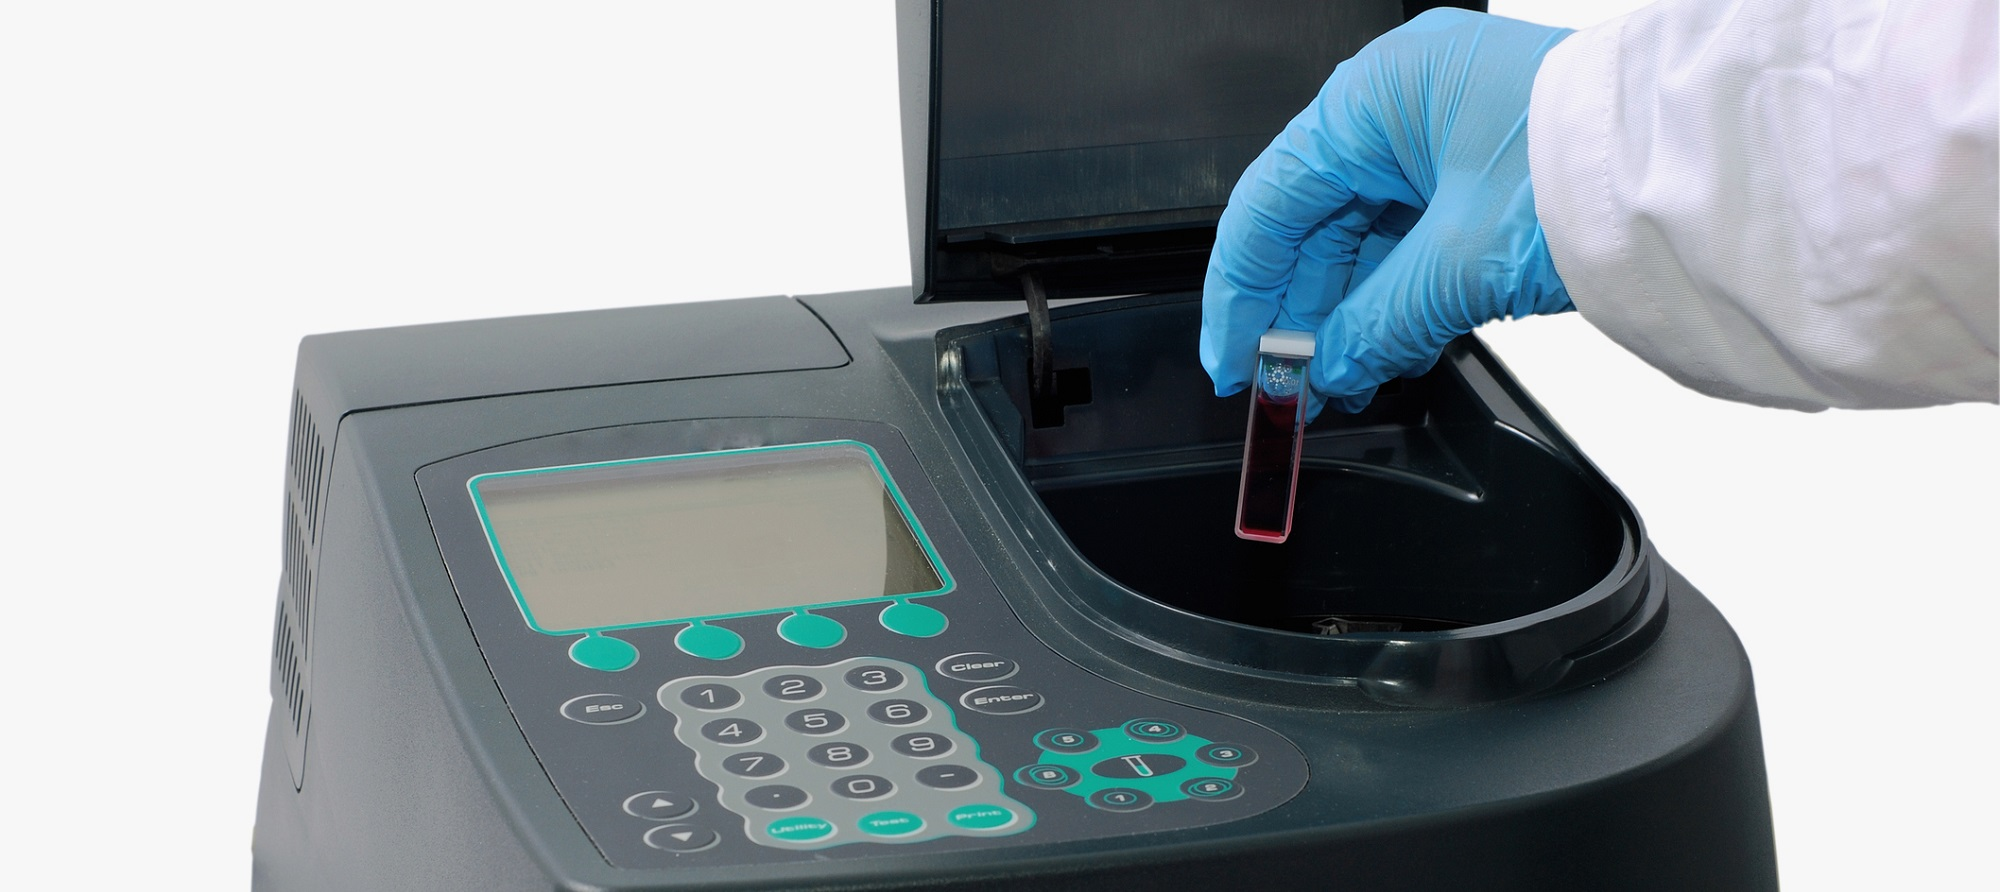 Factors to Consider When Purchasing a UV-Vis or Fluorescence Spectrophotometer